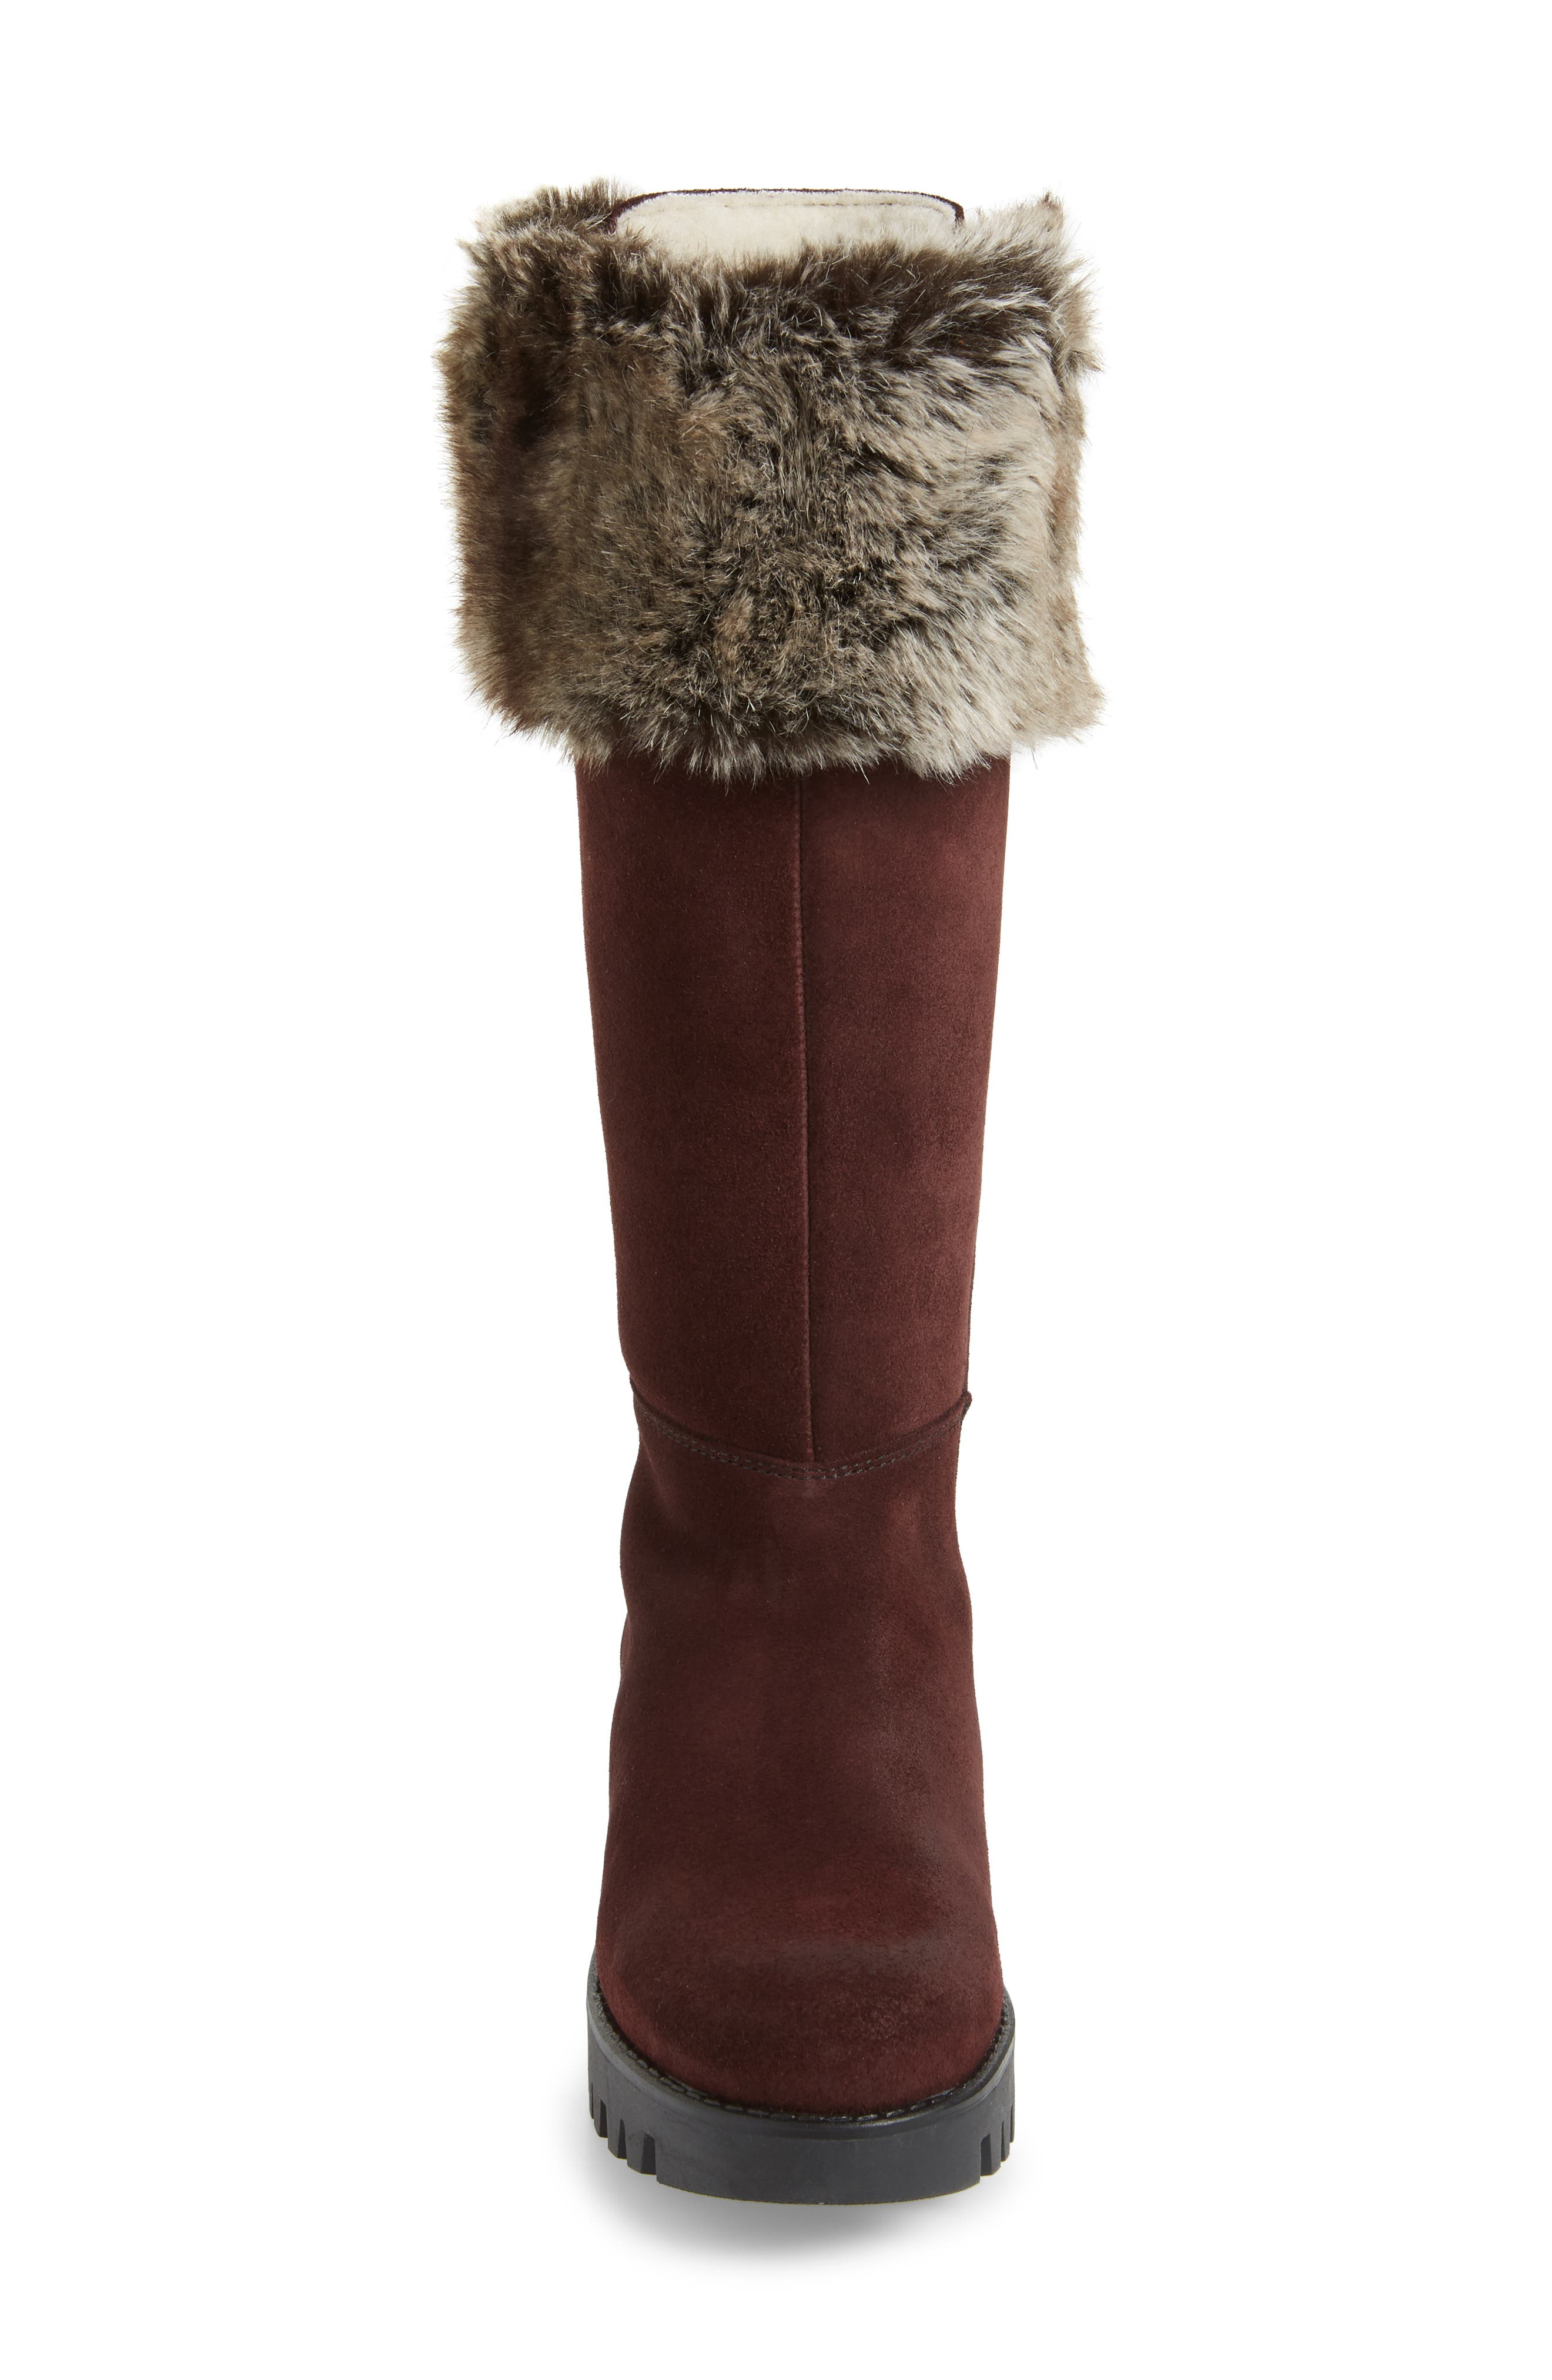 Graham Waterproof Winter Boot with Faux Fur Cuff,                             Alternate thumbnail 3, color,                             Wine Suede